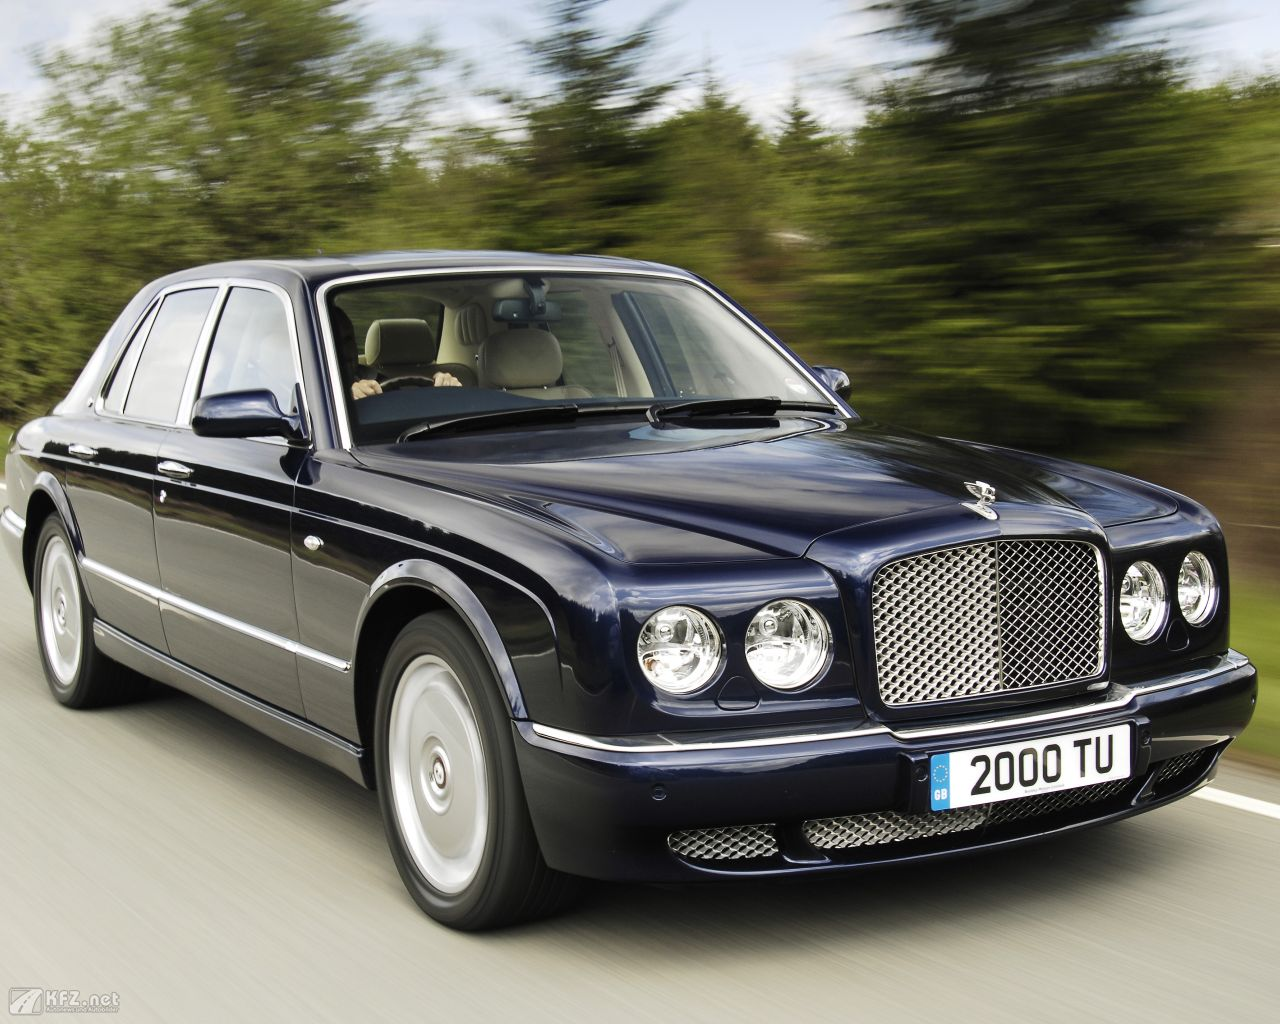 bentley-arnage-1280x1024-1